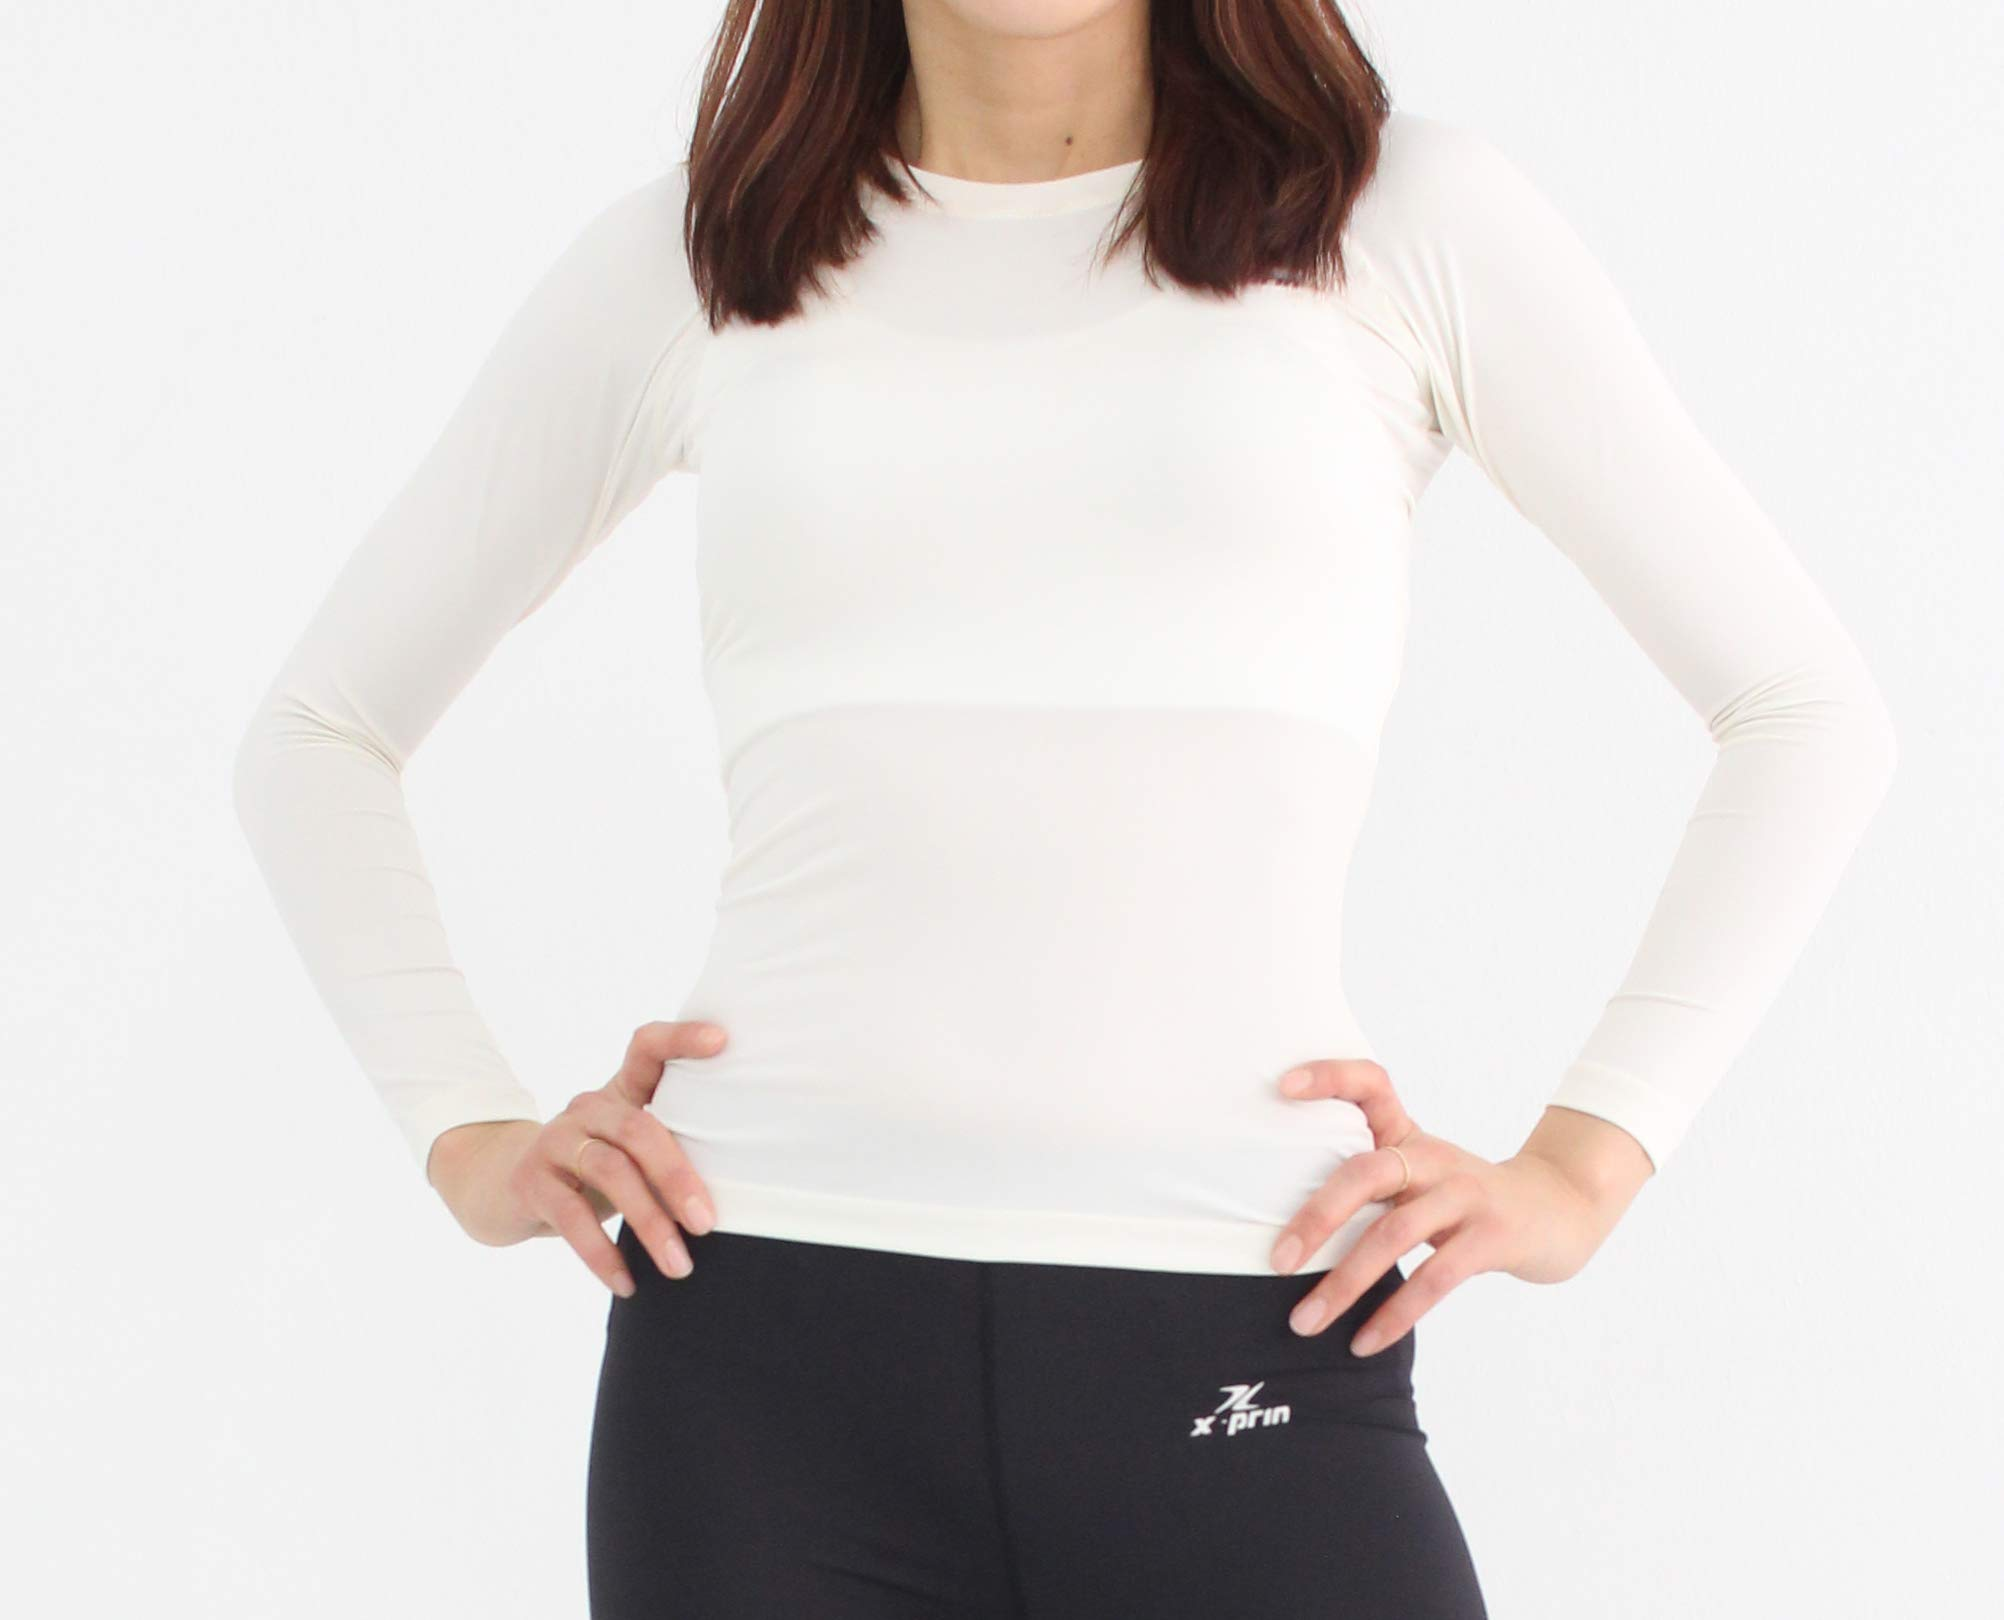 Xprin A100 Series Women's Long Sleeve Cool Base Layer Compression Shirt Sports Wear (S, A102 WHITE)